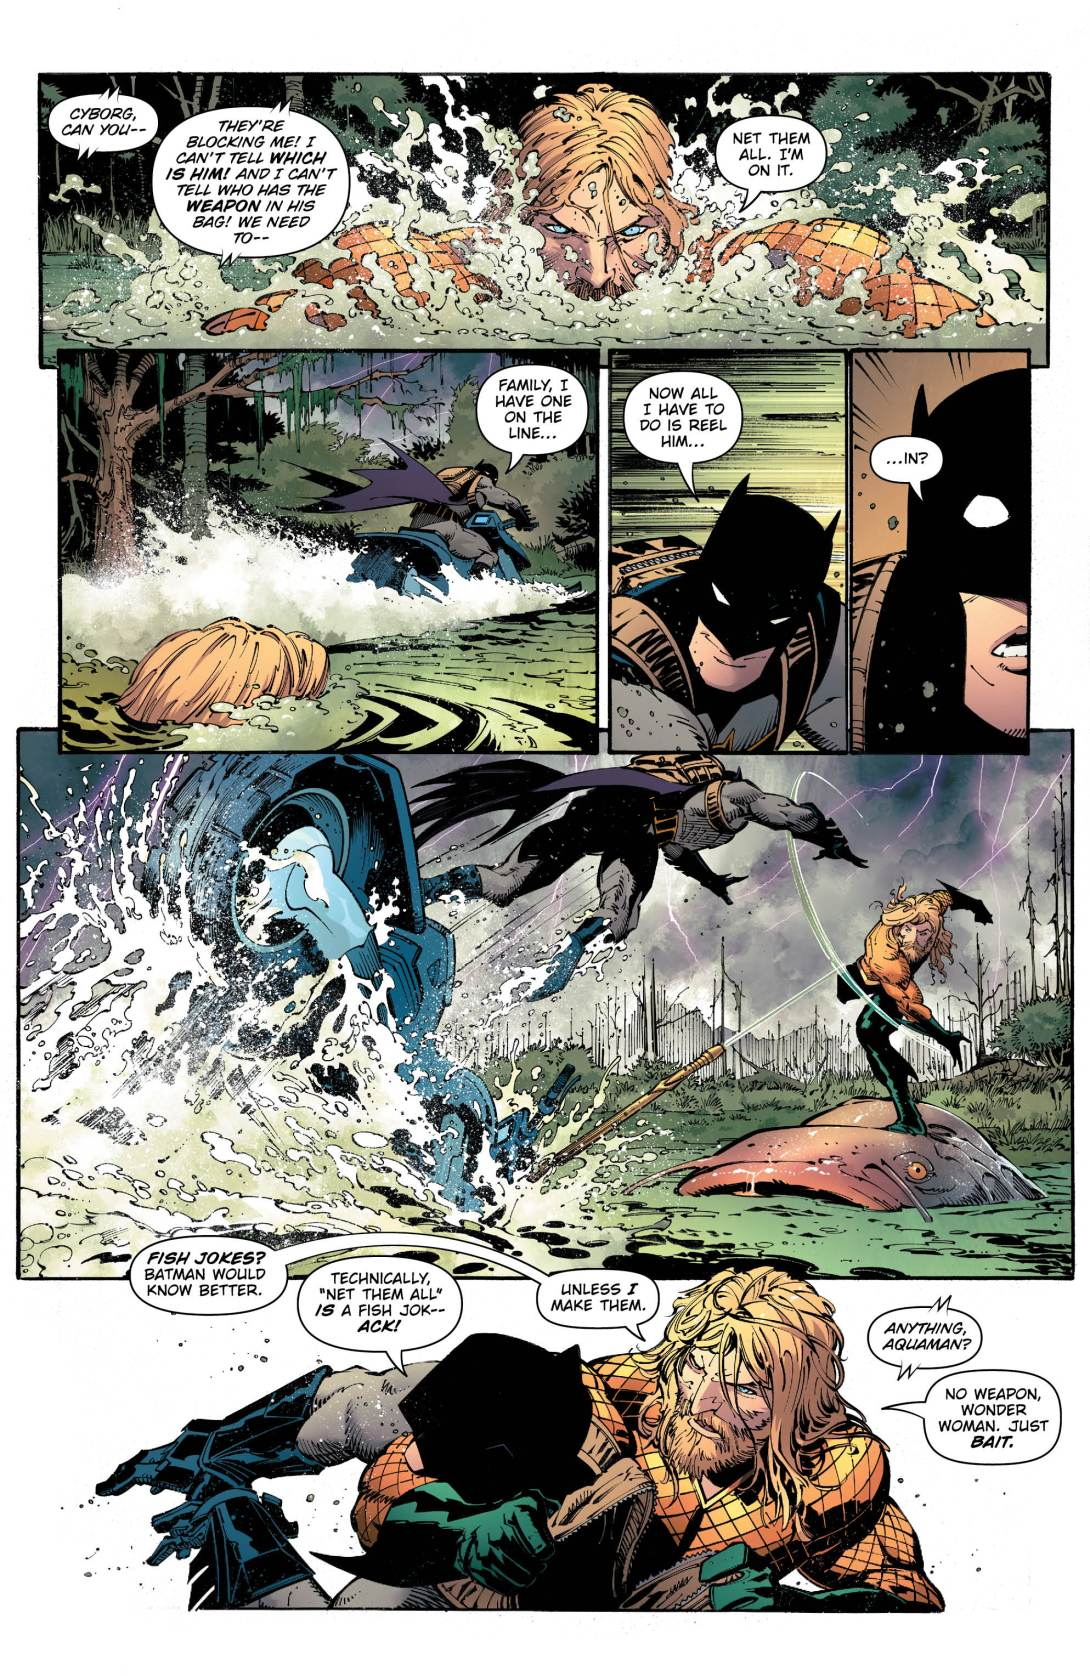 Metal 2 - Page 4 - DC Comics News